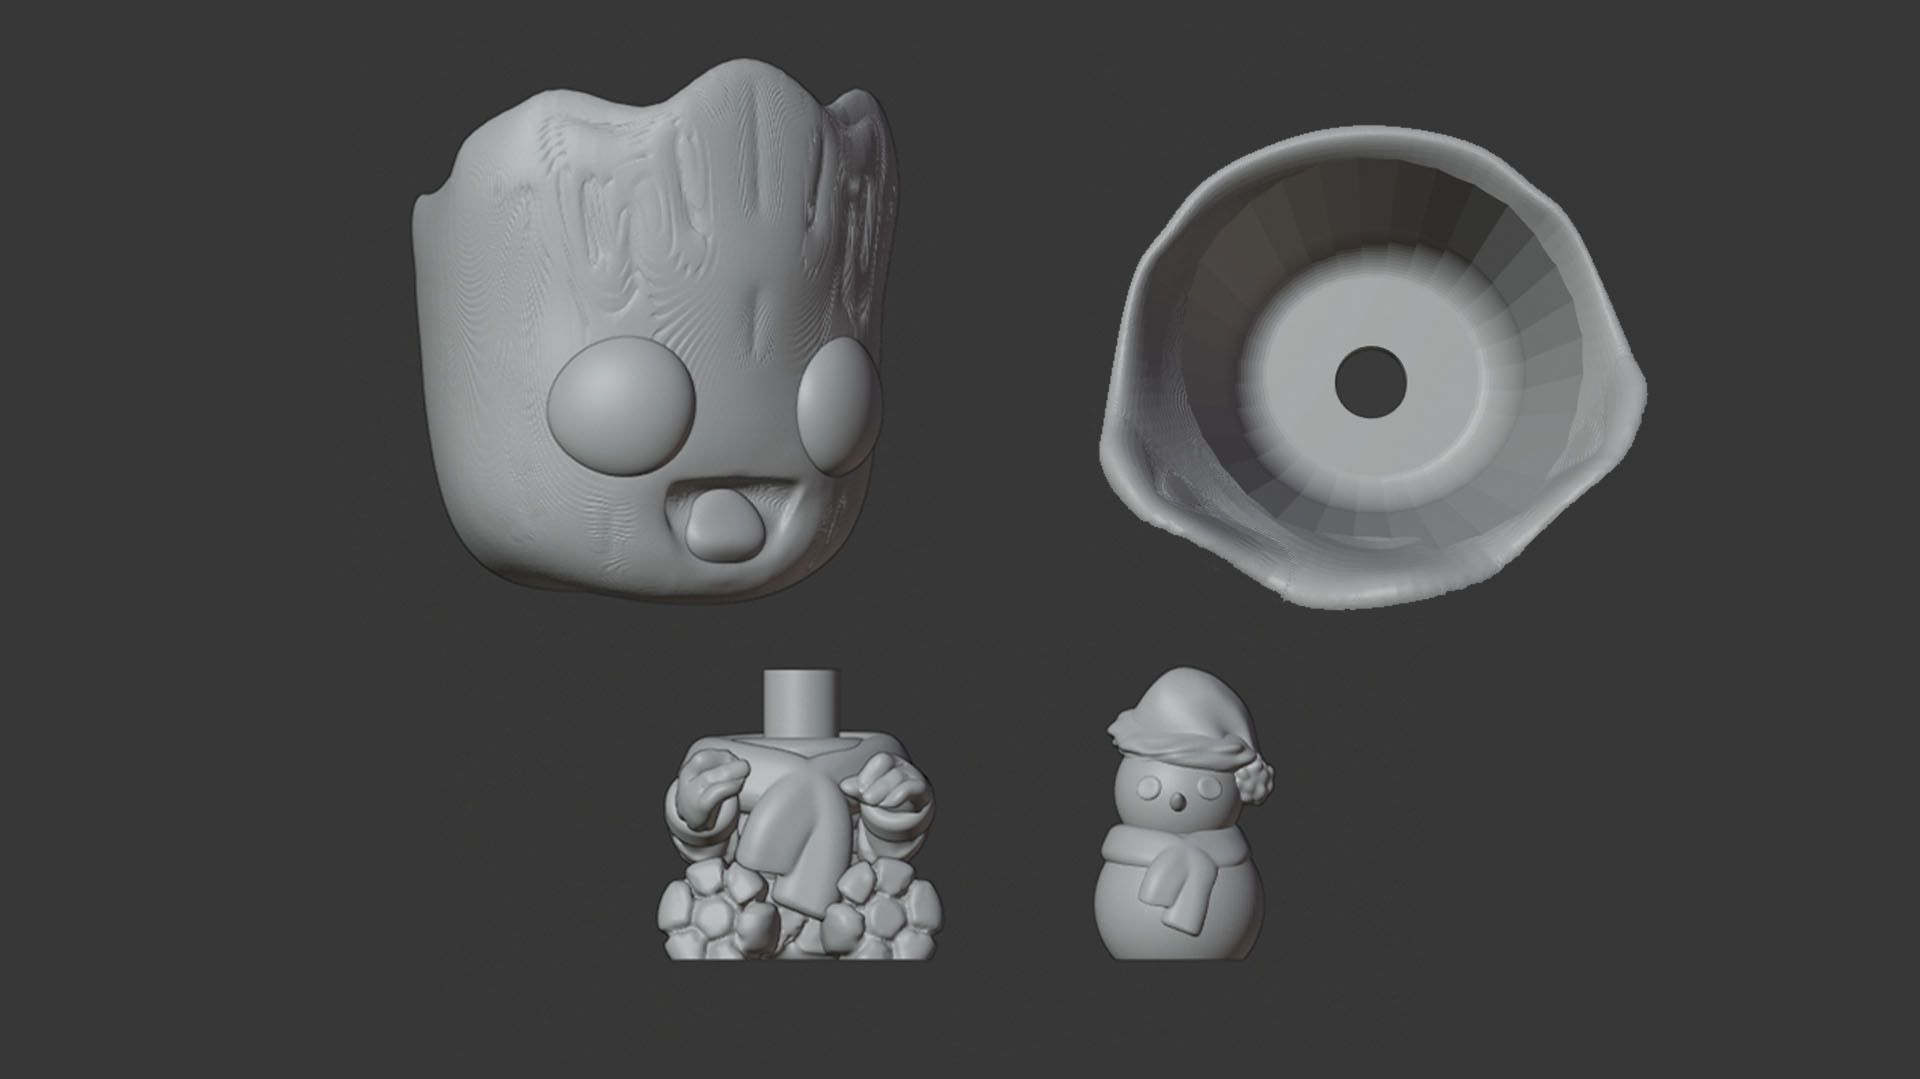 Baby Groot 02_3.jpg Download STL file Baby Groot Pot and Baby Yoda Christmas • Object to 3D print, Markdejavu